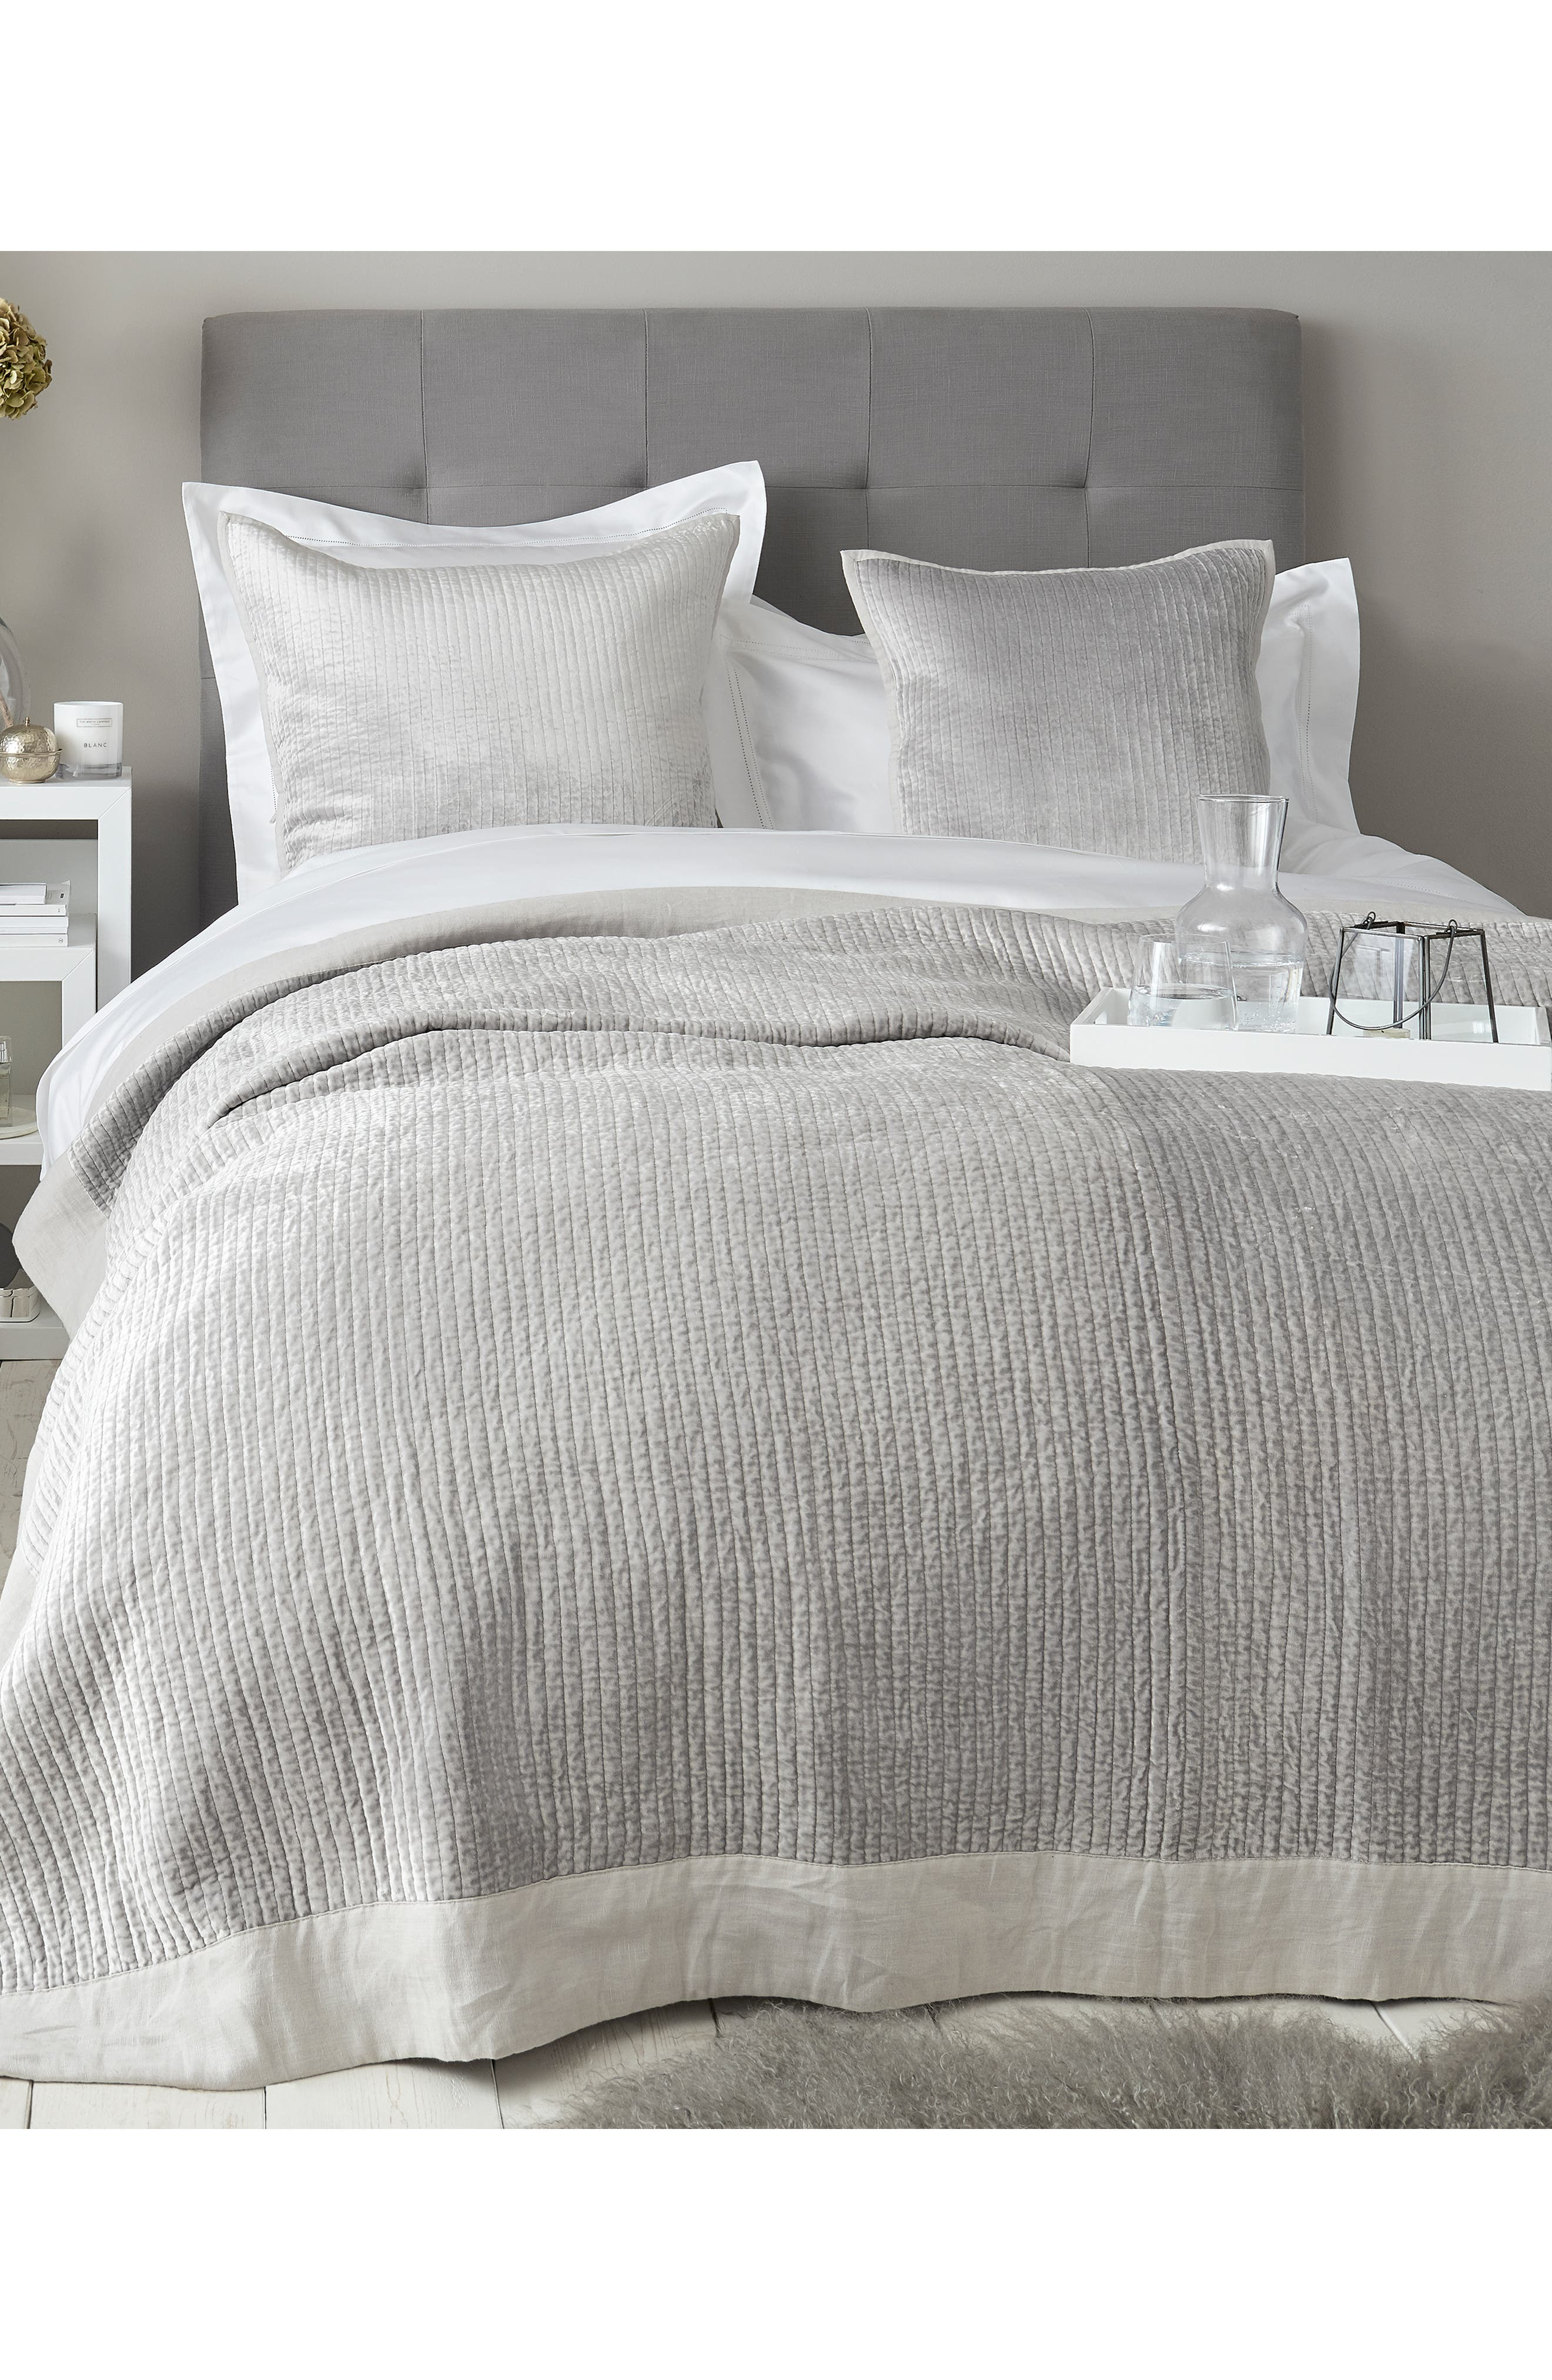 THE WHITE COMPANY,                             Vienne Quilt,                             Main thumbnail 1, color,                             SILVER